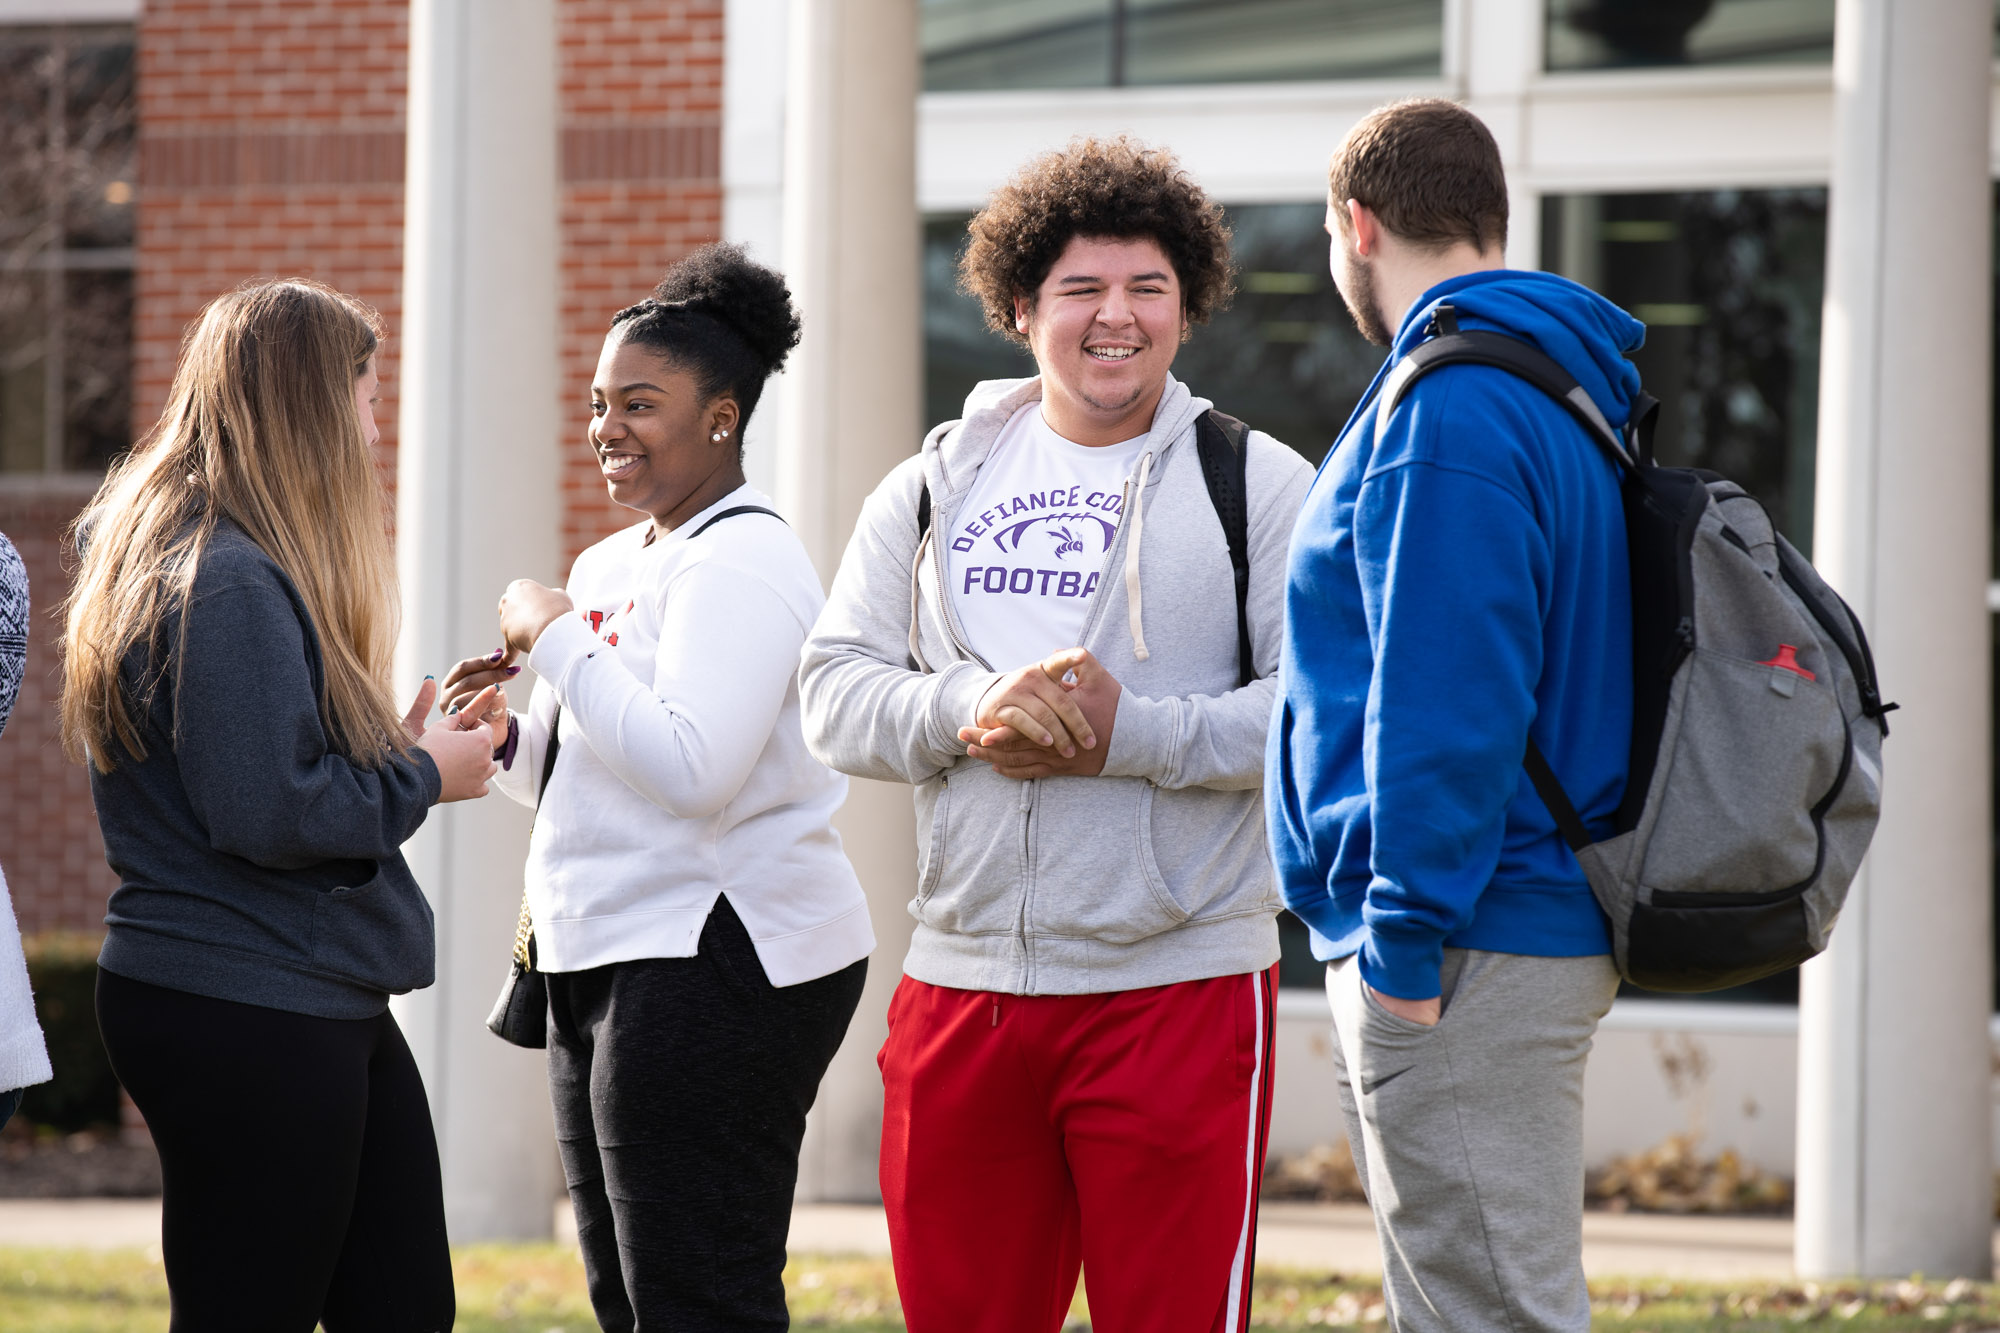 Defiance College students on campus